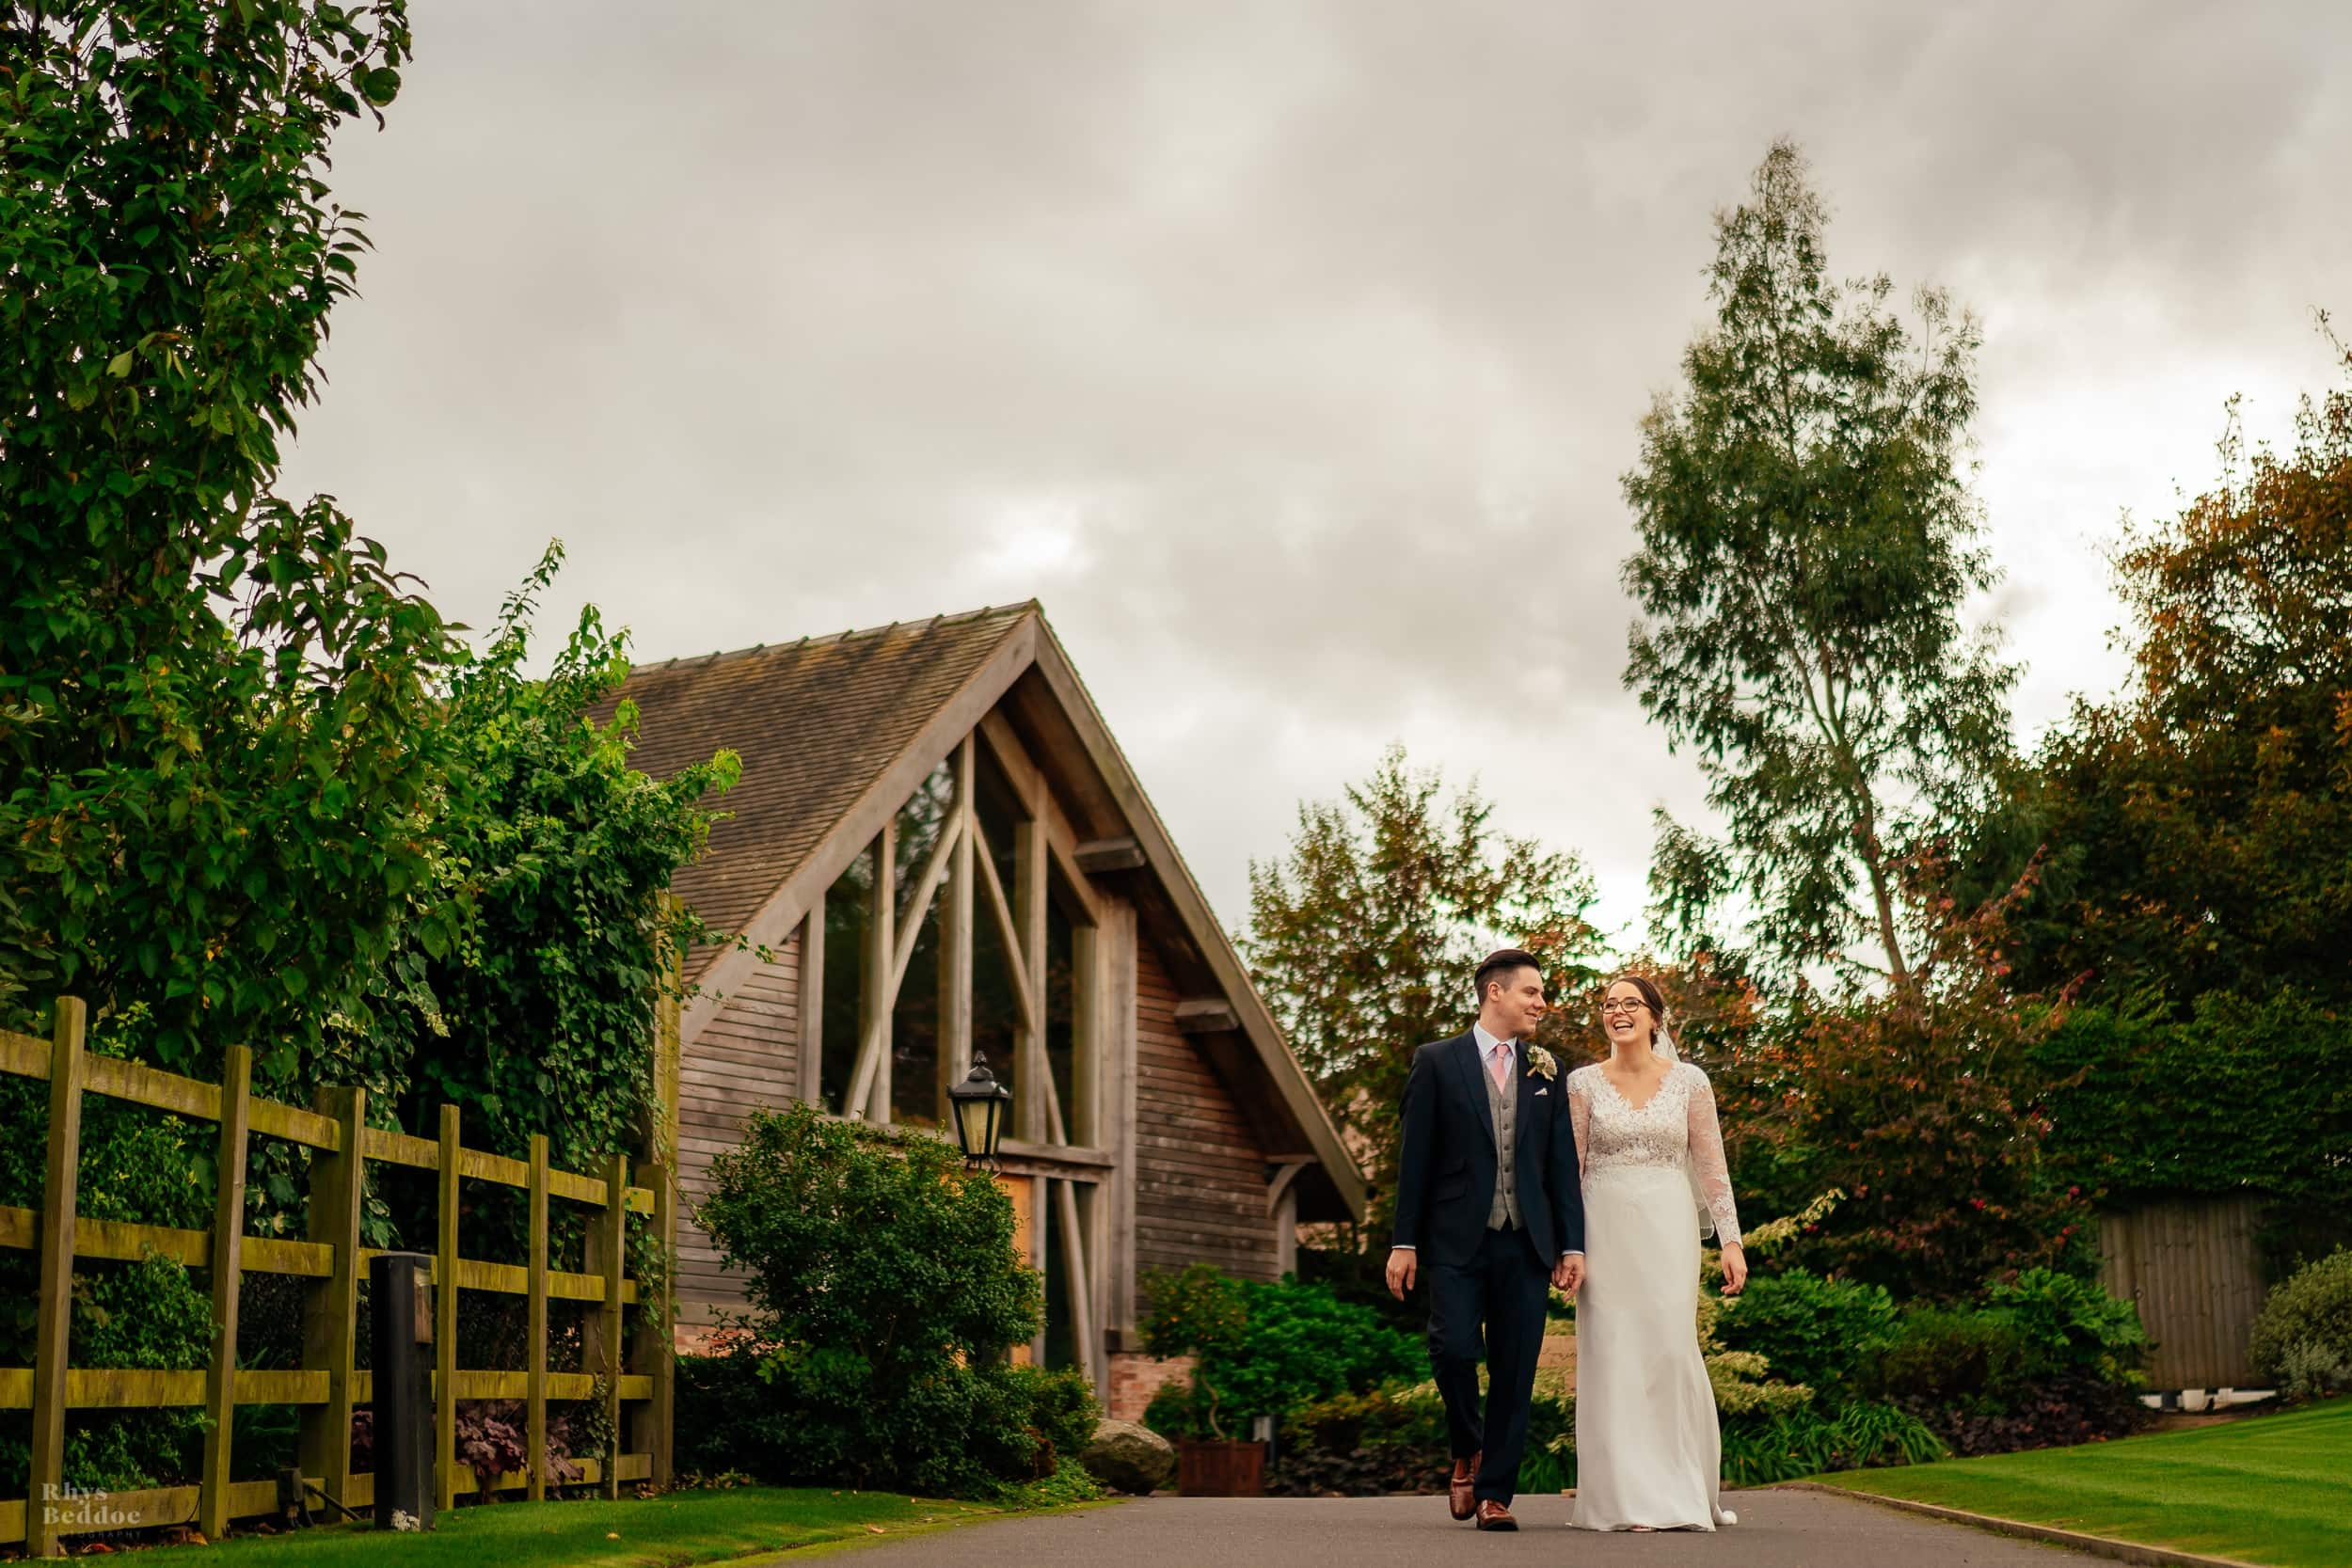 Mythe barn wedding photographer